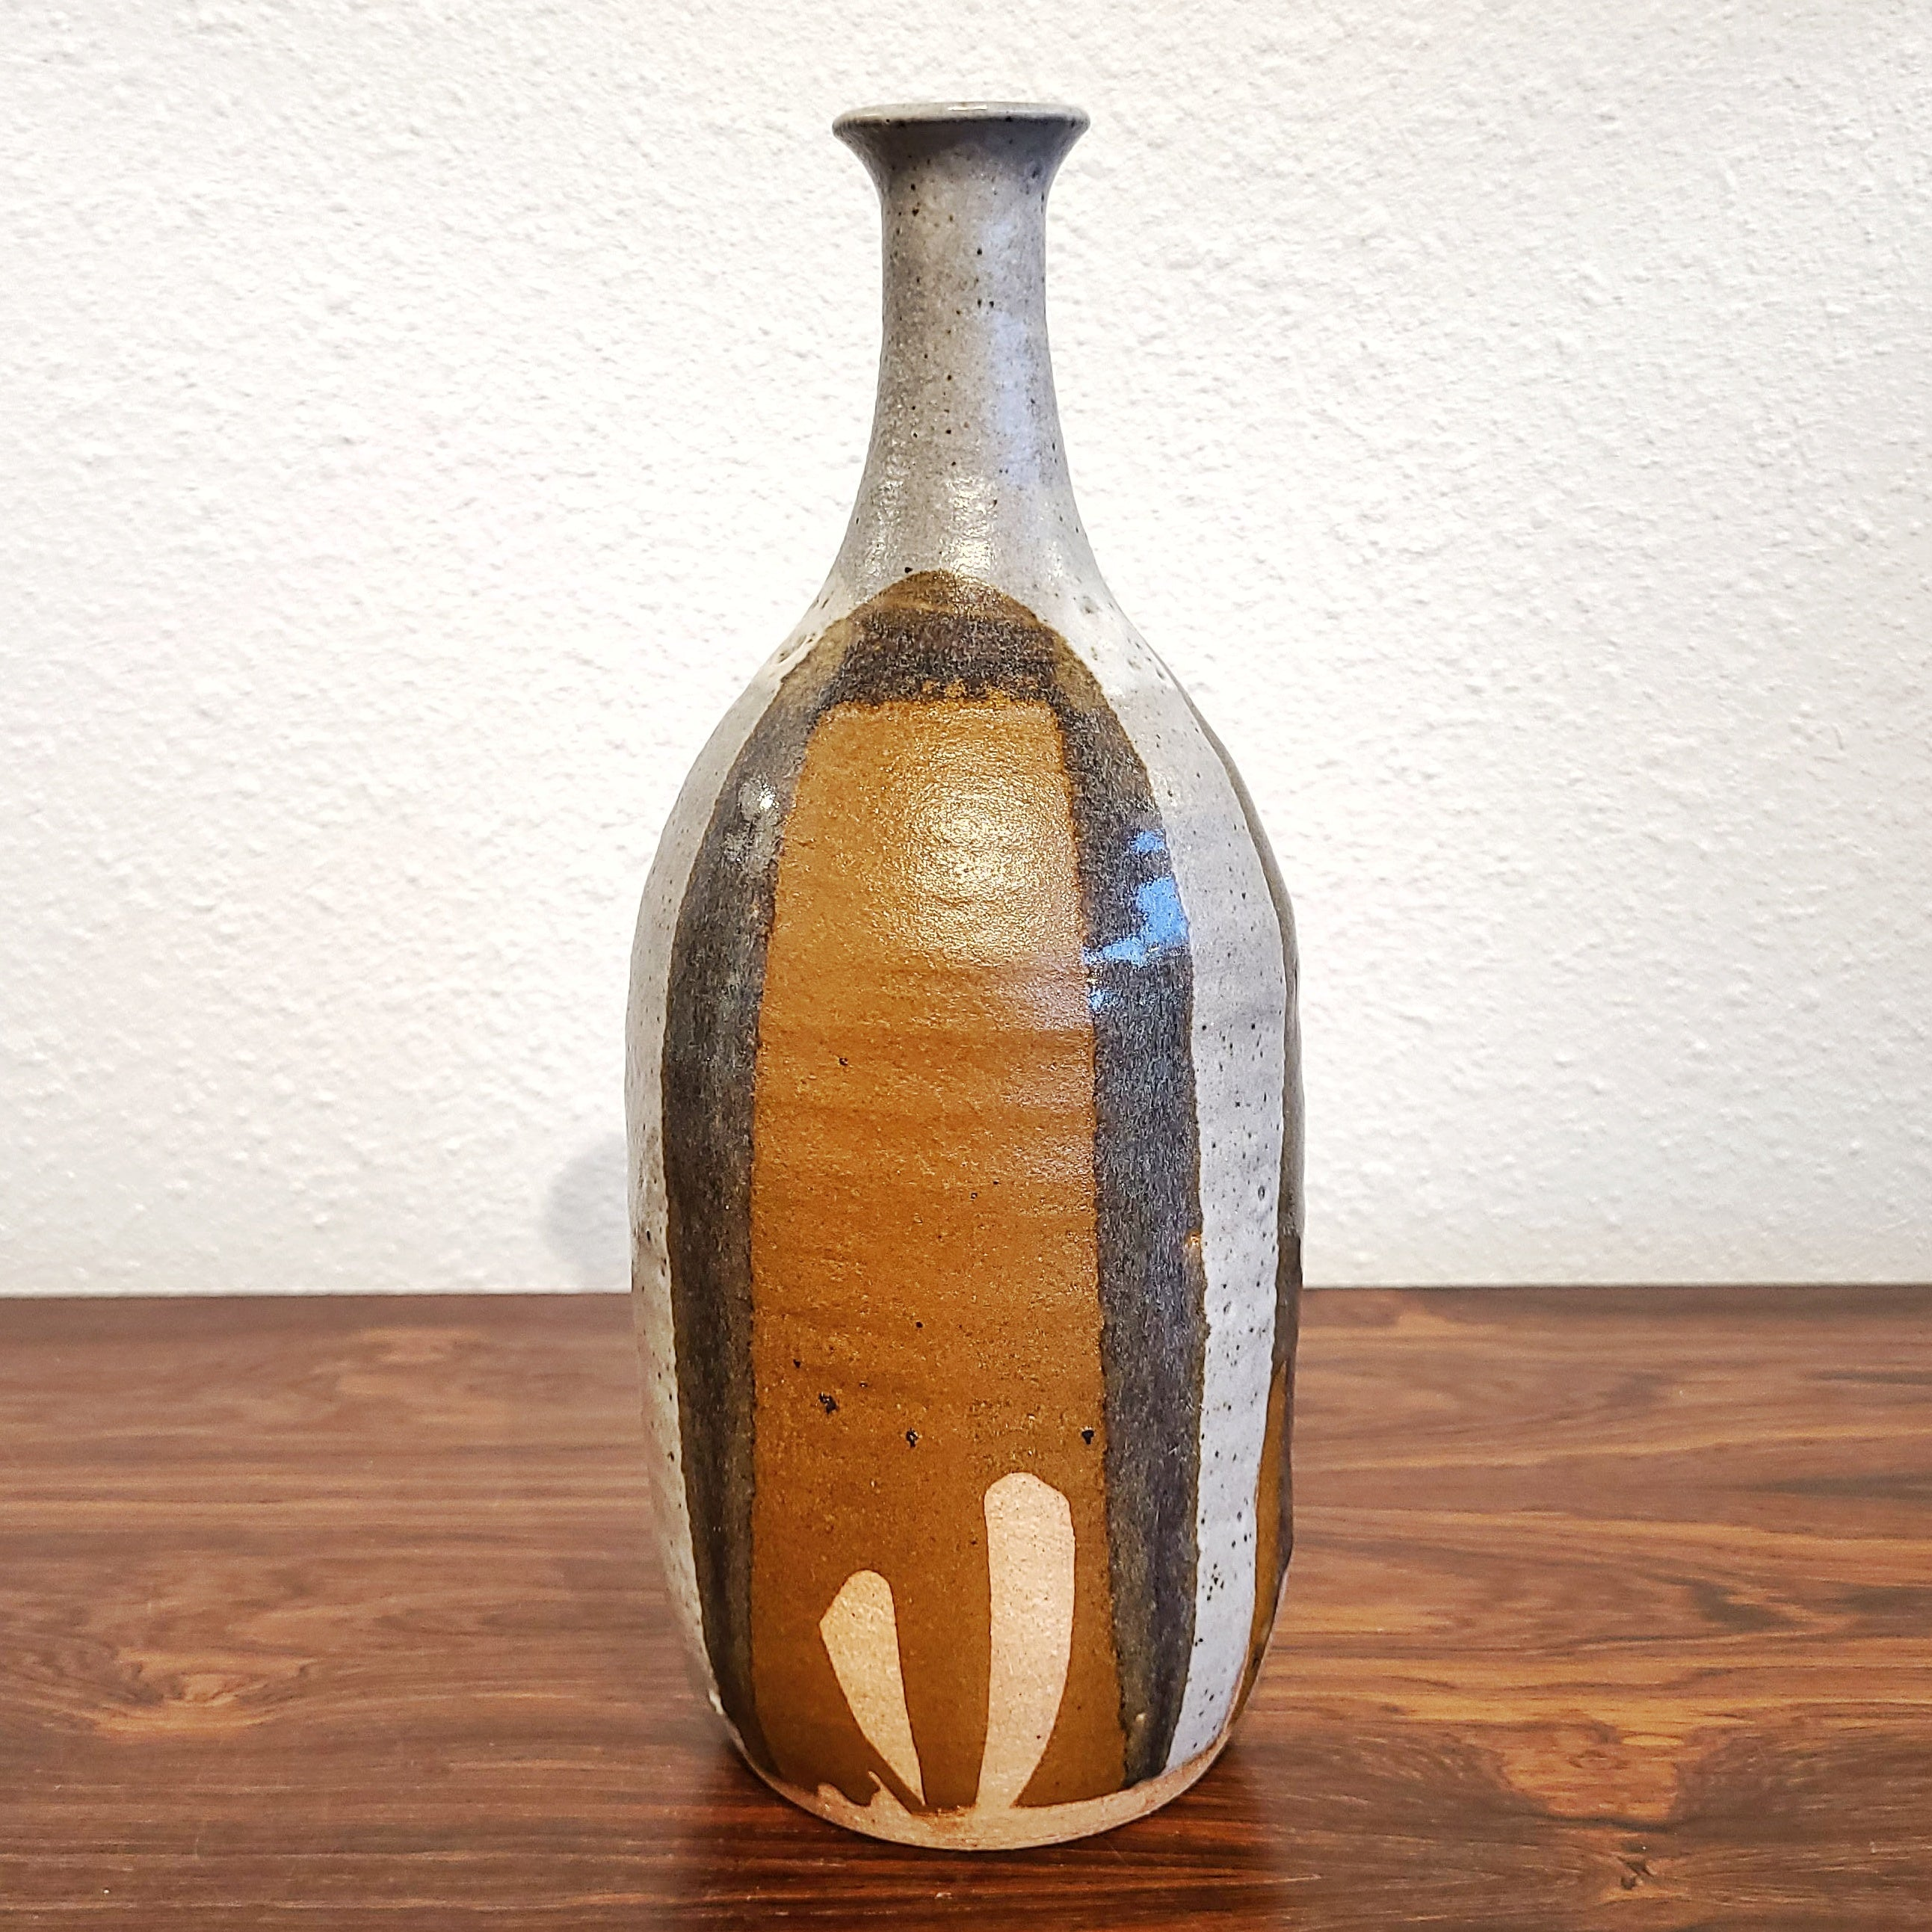 DAVID CRESSEY BOTTLE VASE (27.5cm)